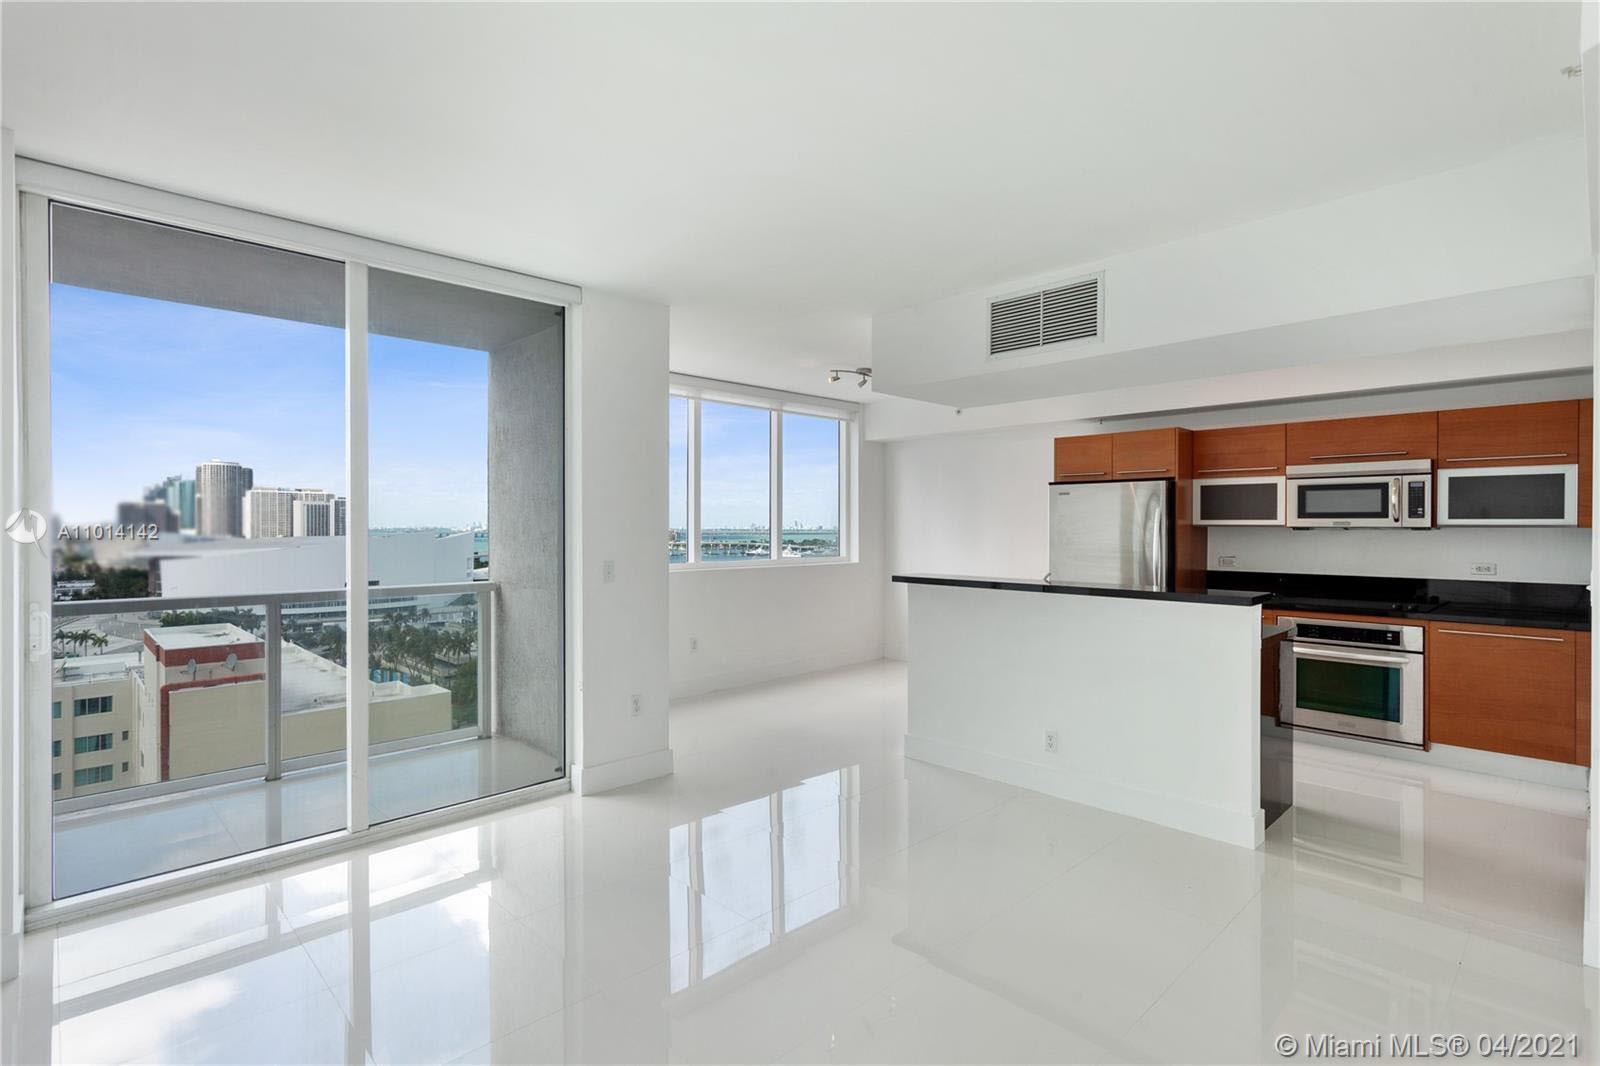 WOW SEE THAT VIEW!!  from this 1 bedroom + enclosed den and 2 full baths. Great location in downtown Miami. Remodeled with porcelain white floors thru-out, modern appliances, high impact windows, W/D inside unit, walk-in closet, Stainless Steel appliances in the kitchen. Private parking. Luxury building with 5 star amenities: Jacuzzi, sauna, pool, theater, bar, lounge, conf. room & more.